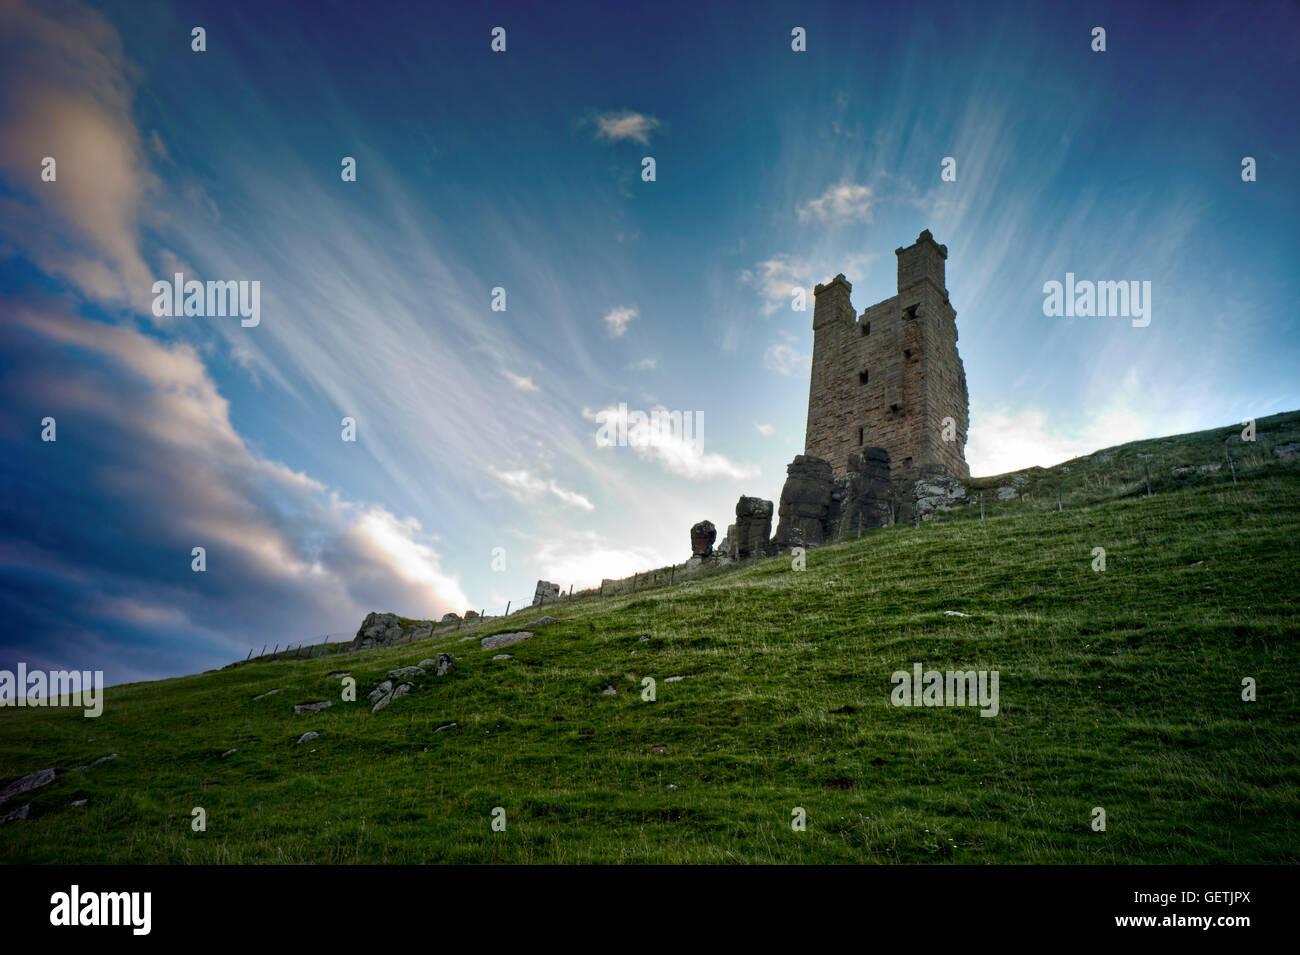 Château de Dunstanburgh perché sur la pointe. Photo Stock